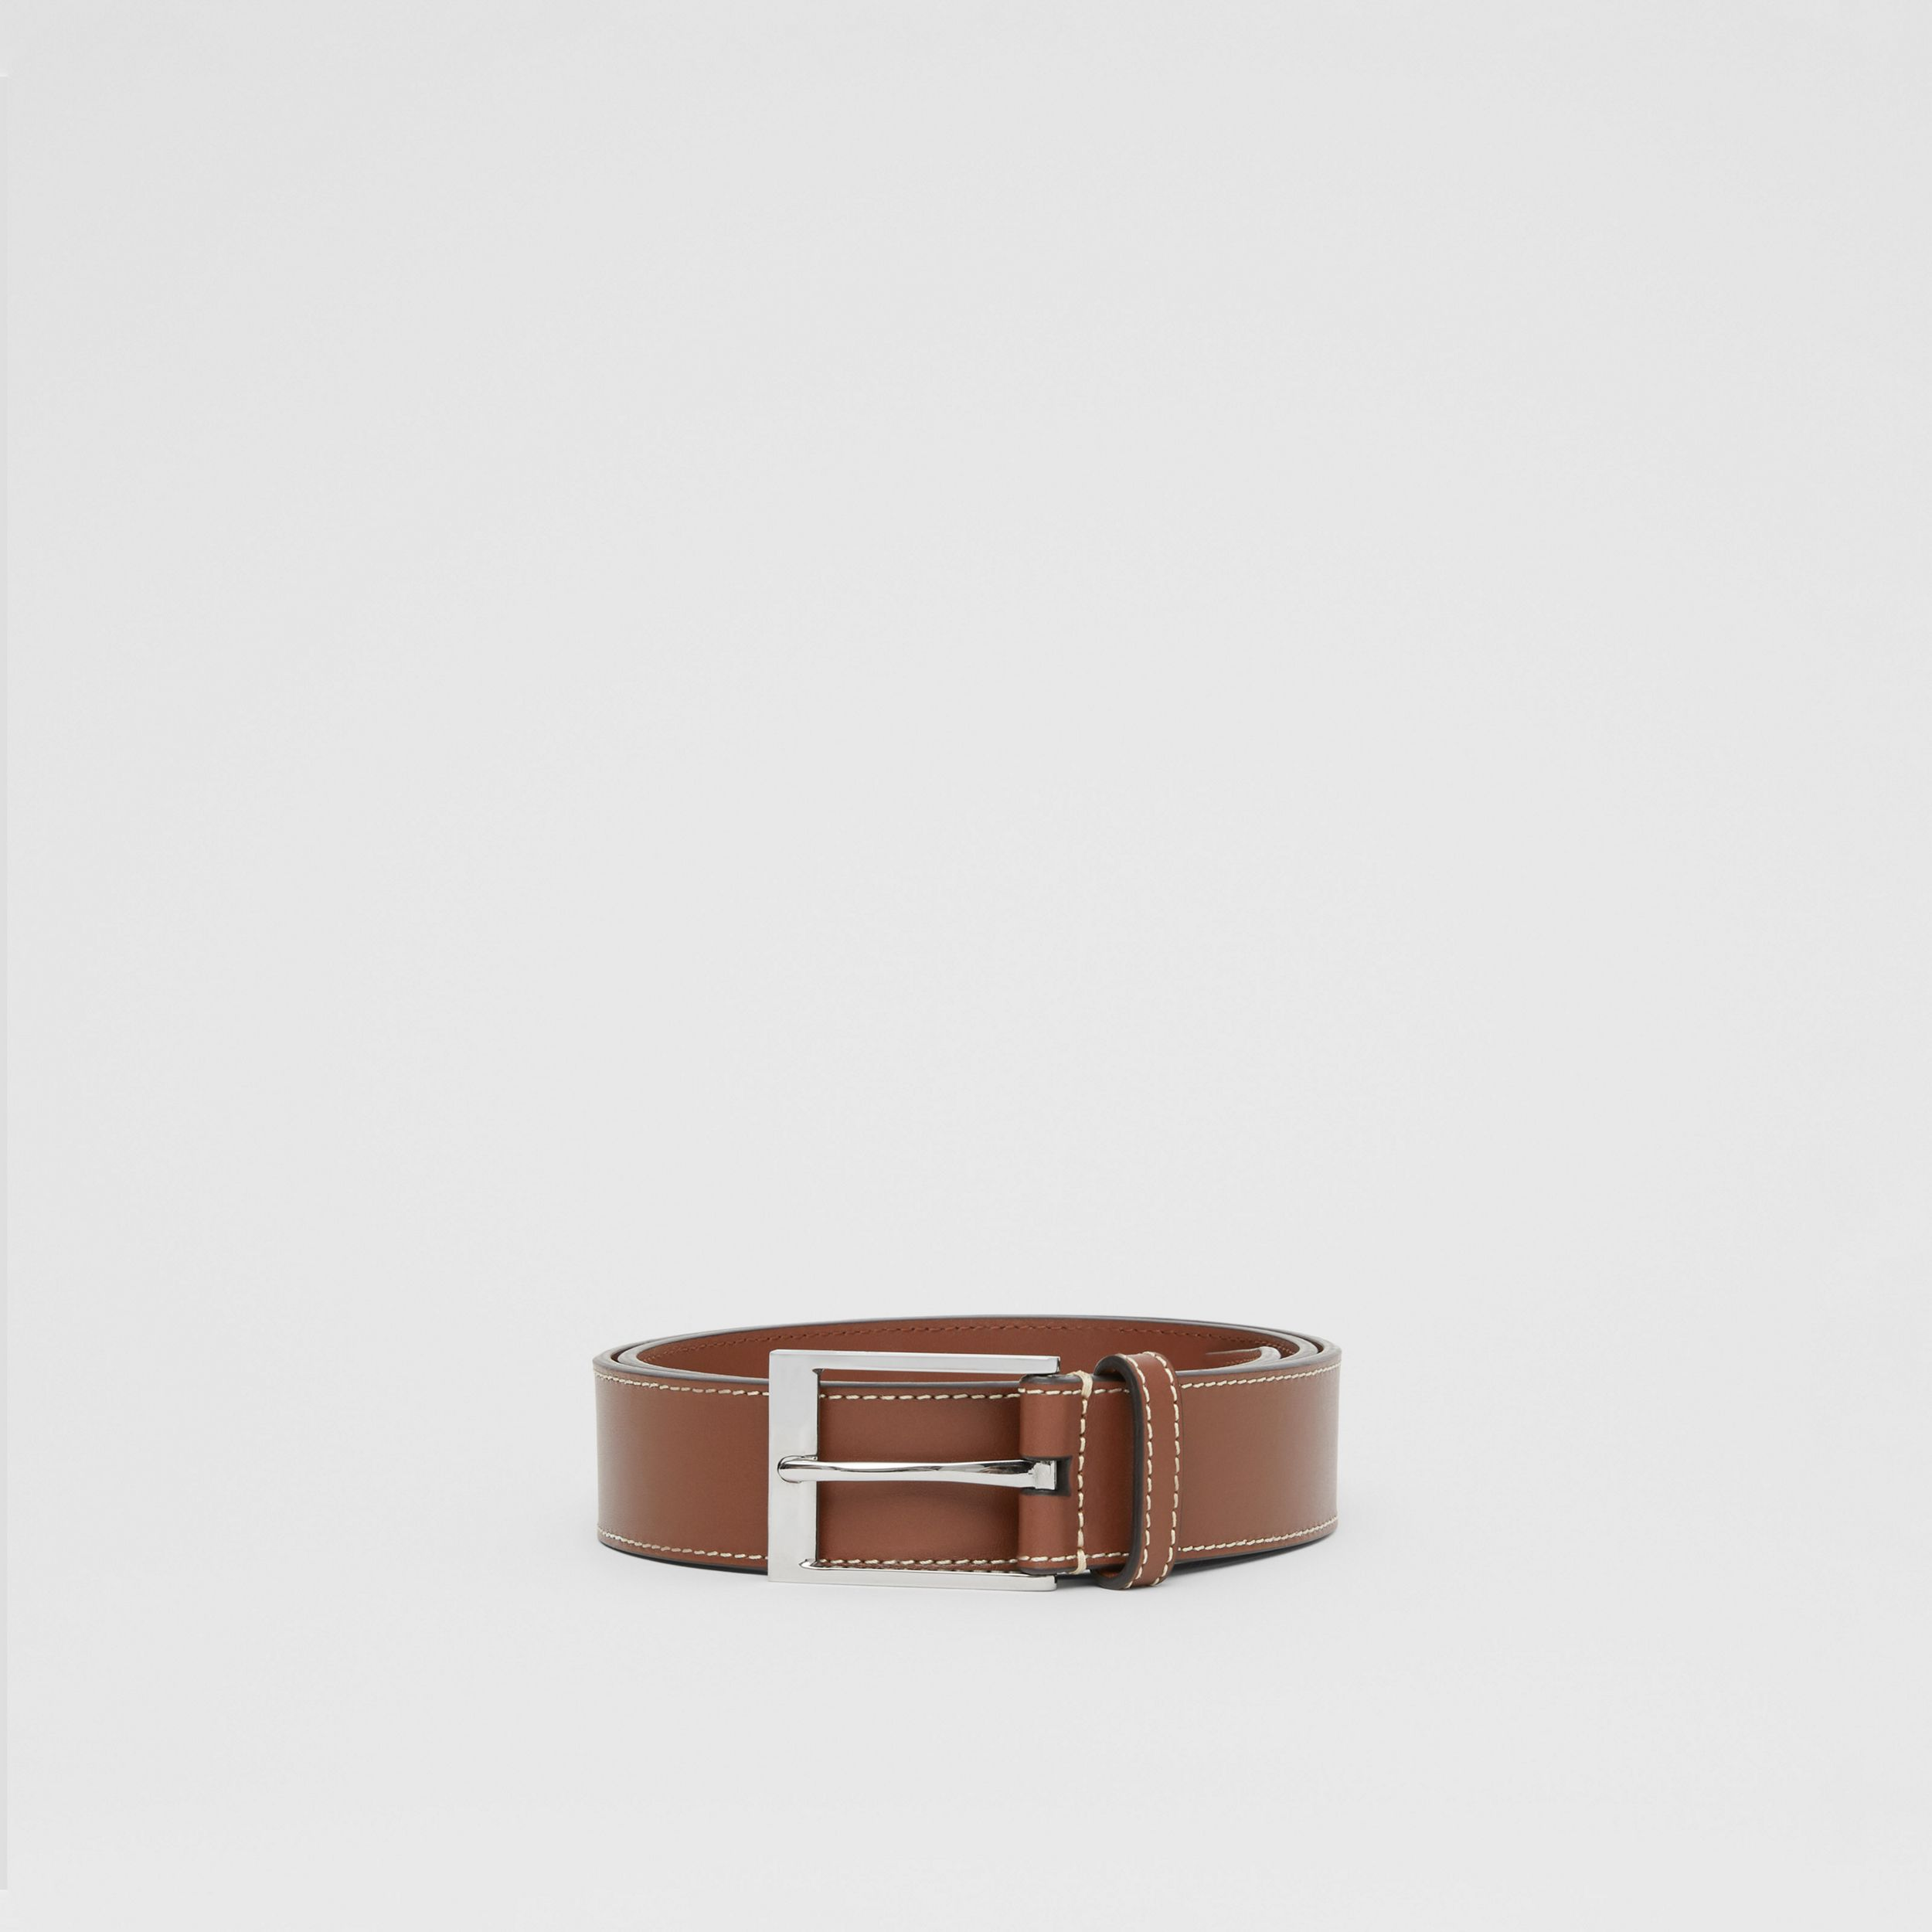 Topstitched Leather Belt in Tan - Men | Burberry - 4